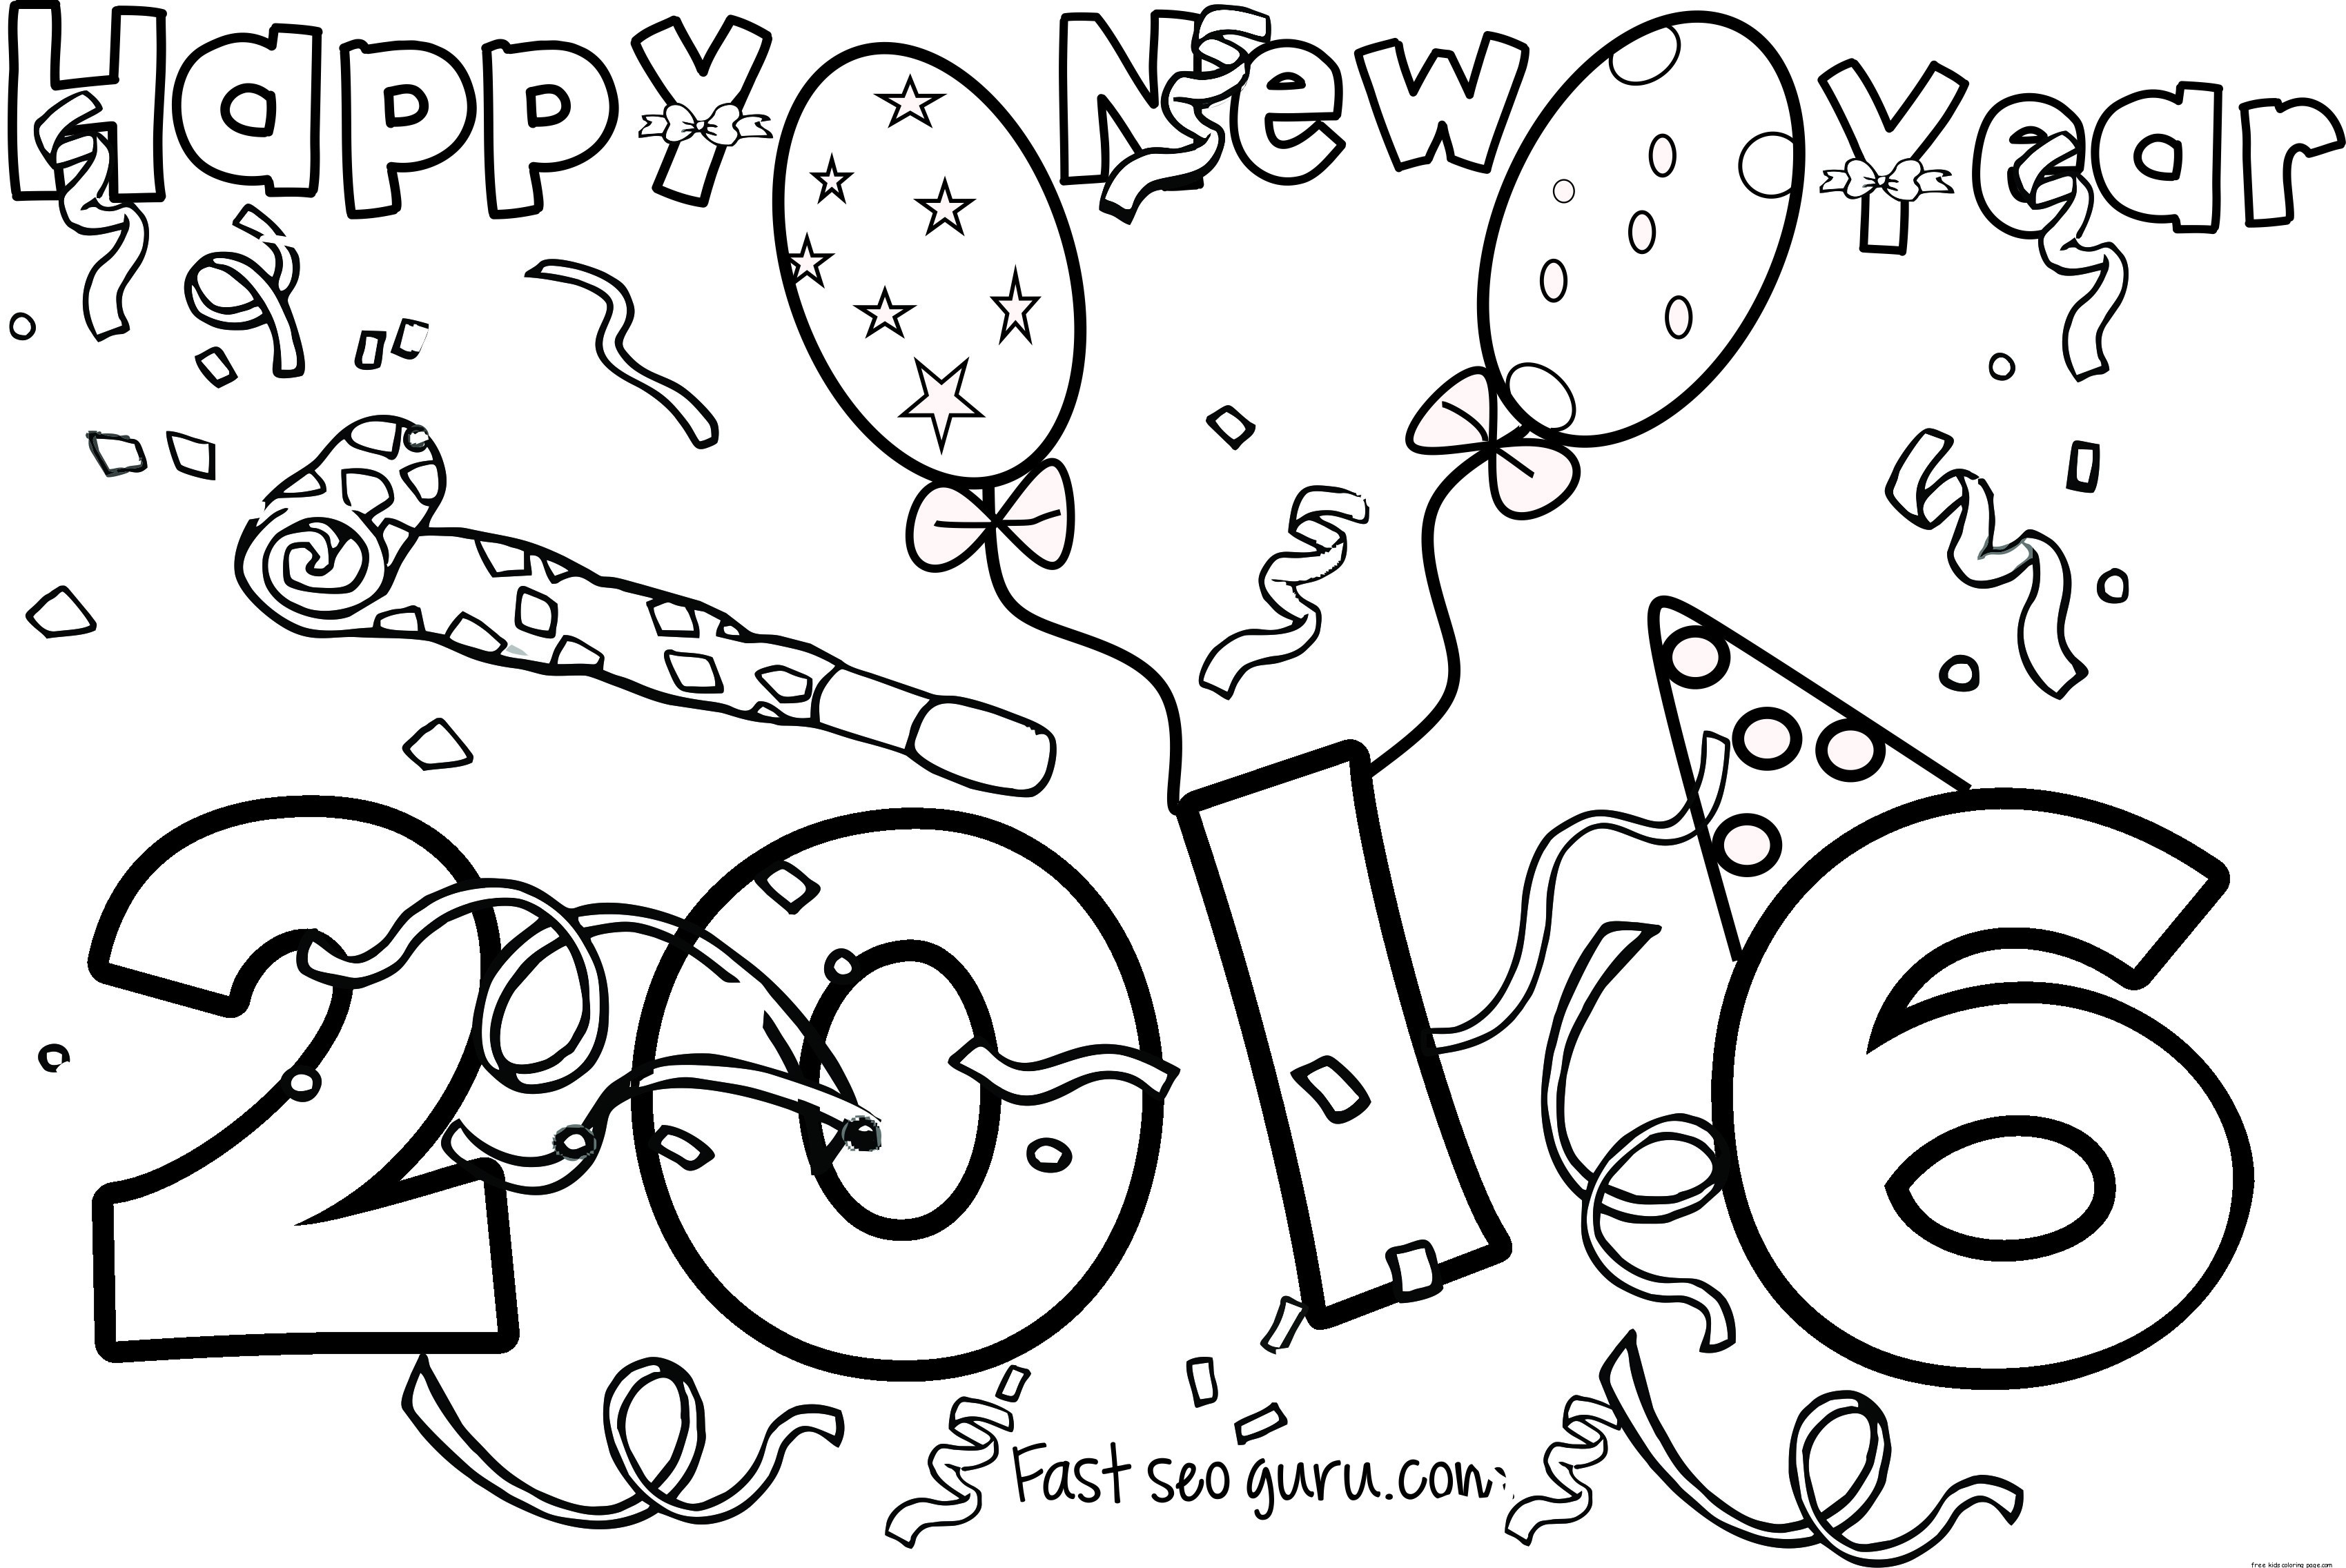 happy new year 2016 printable coloring pages Free Printable